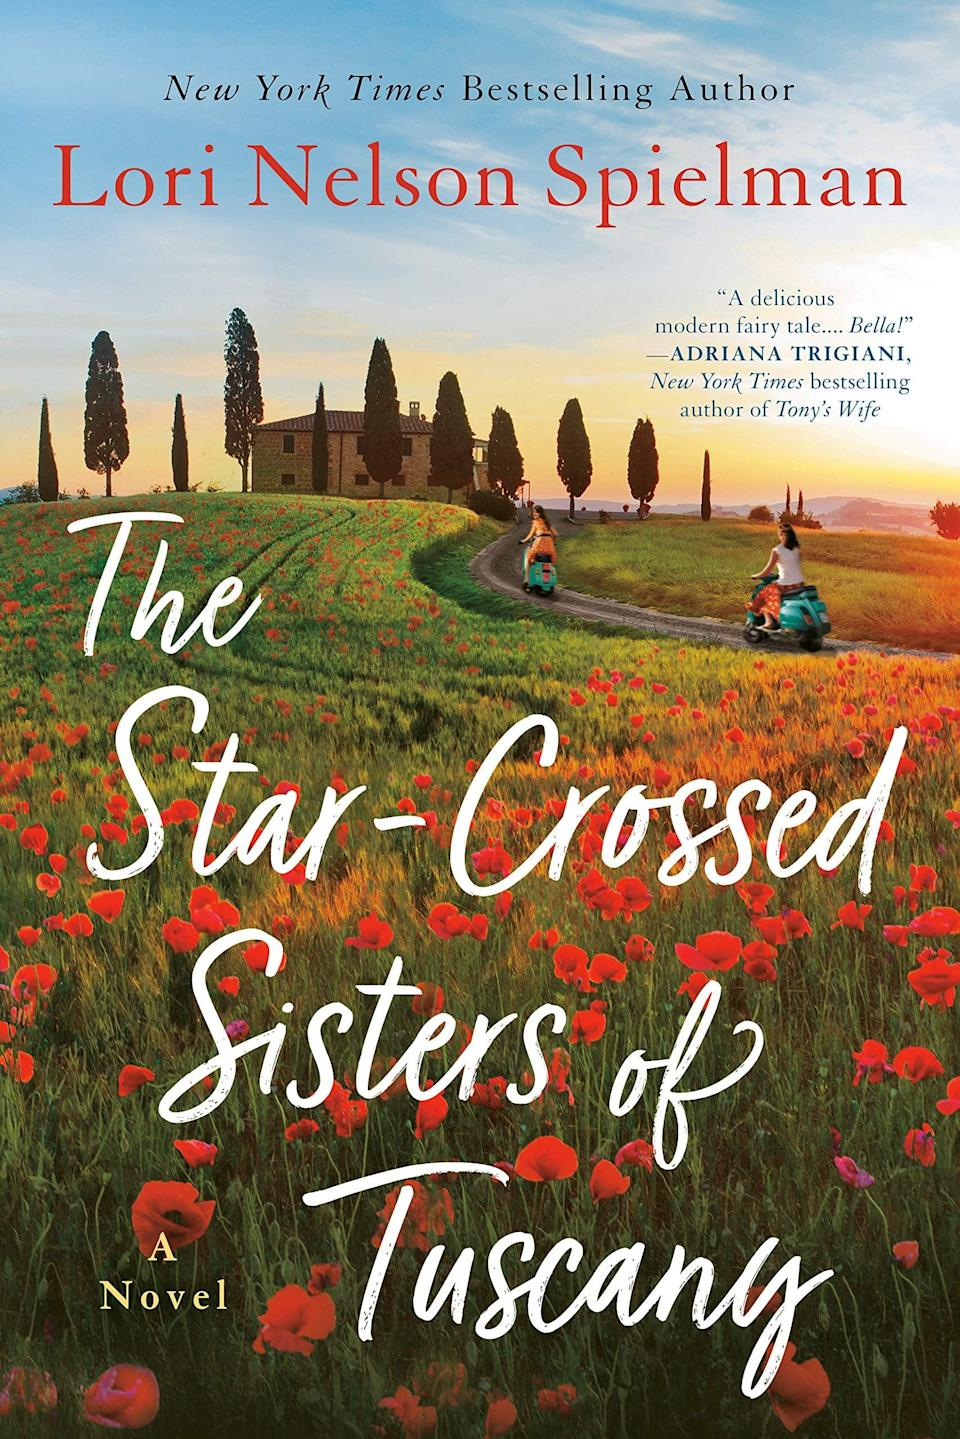 <p>There's magic within the pages of Lori Nelson Spielman's charming <span><strong>The Star-Crossed Sisters of Tuscany</strong></span>. Thanks to a curse, for over 200 years no second-born sister in the Fontana family has found love. But that all changes when cousins Emilia and Lucy get a call from their 80-year-old Aunt Poppy, who vows to break the curse if they'll accompany her on a once-in-a-lifetime trip to Italy. </p> <p><em>Out Nov. 17</em></p>